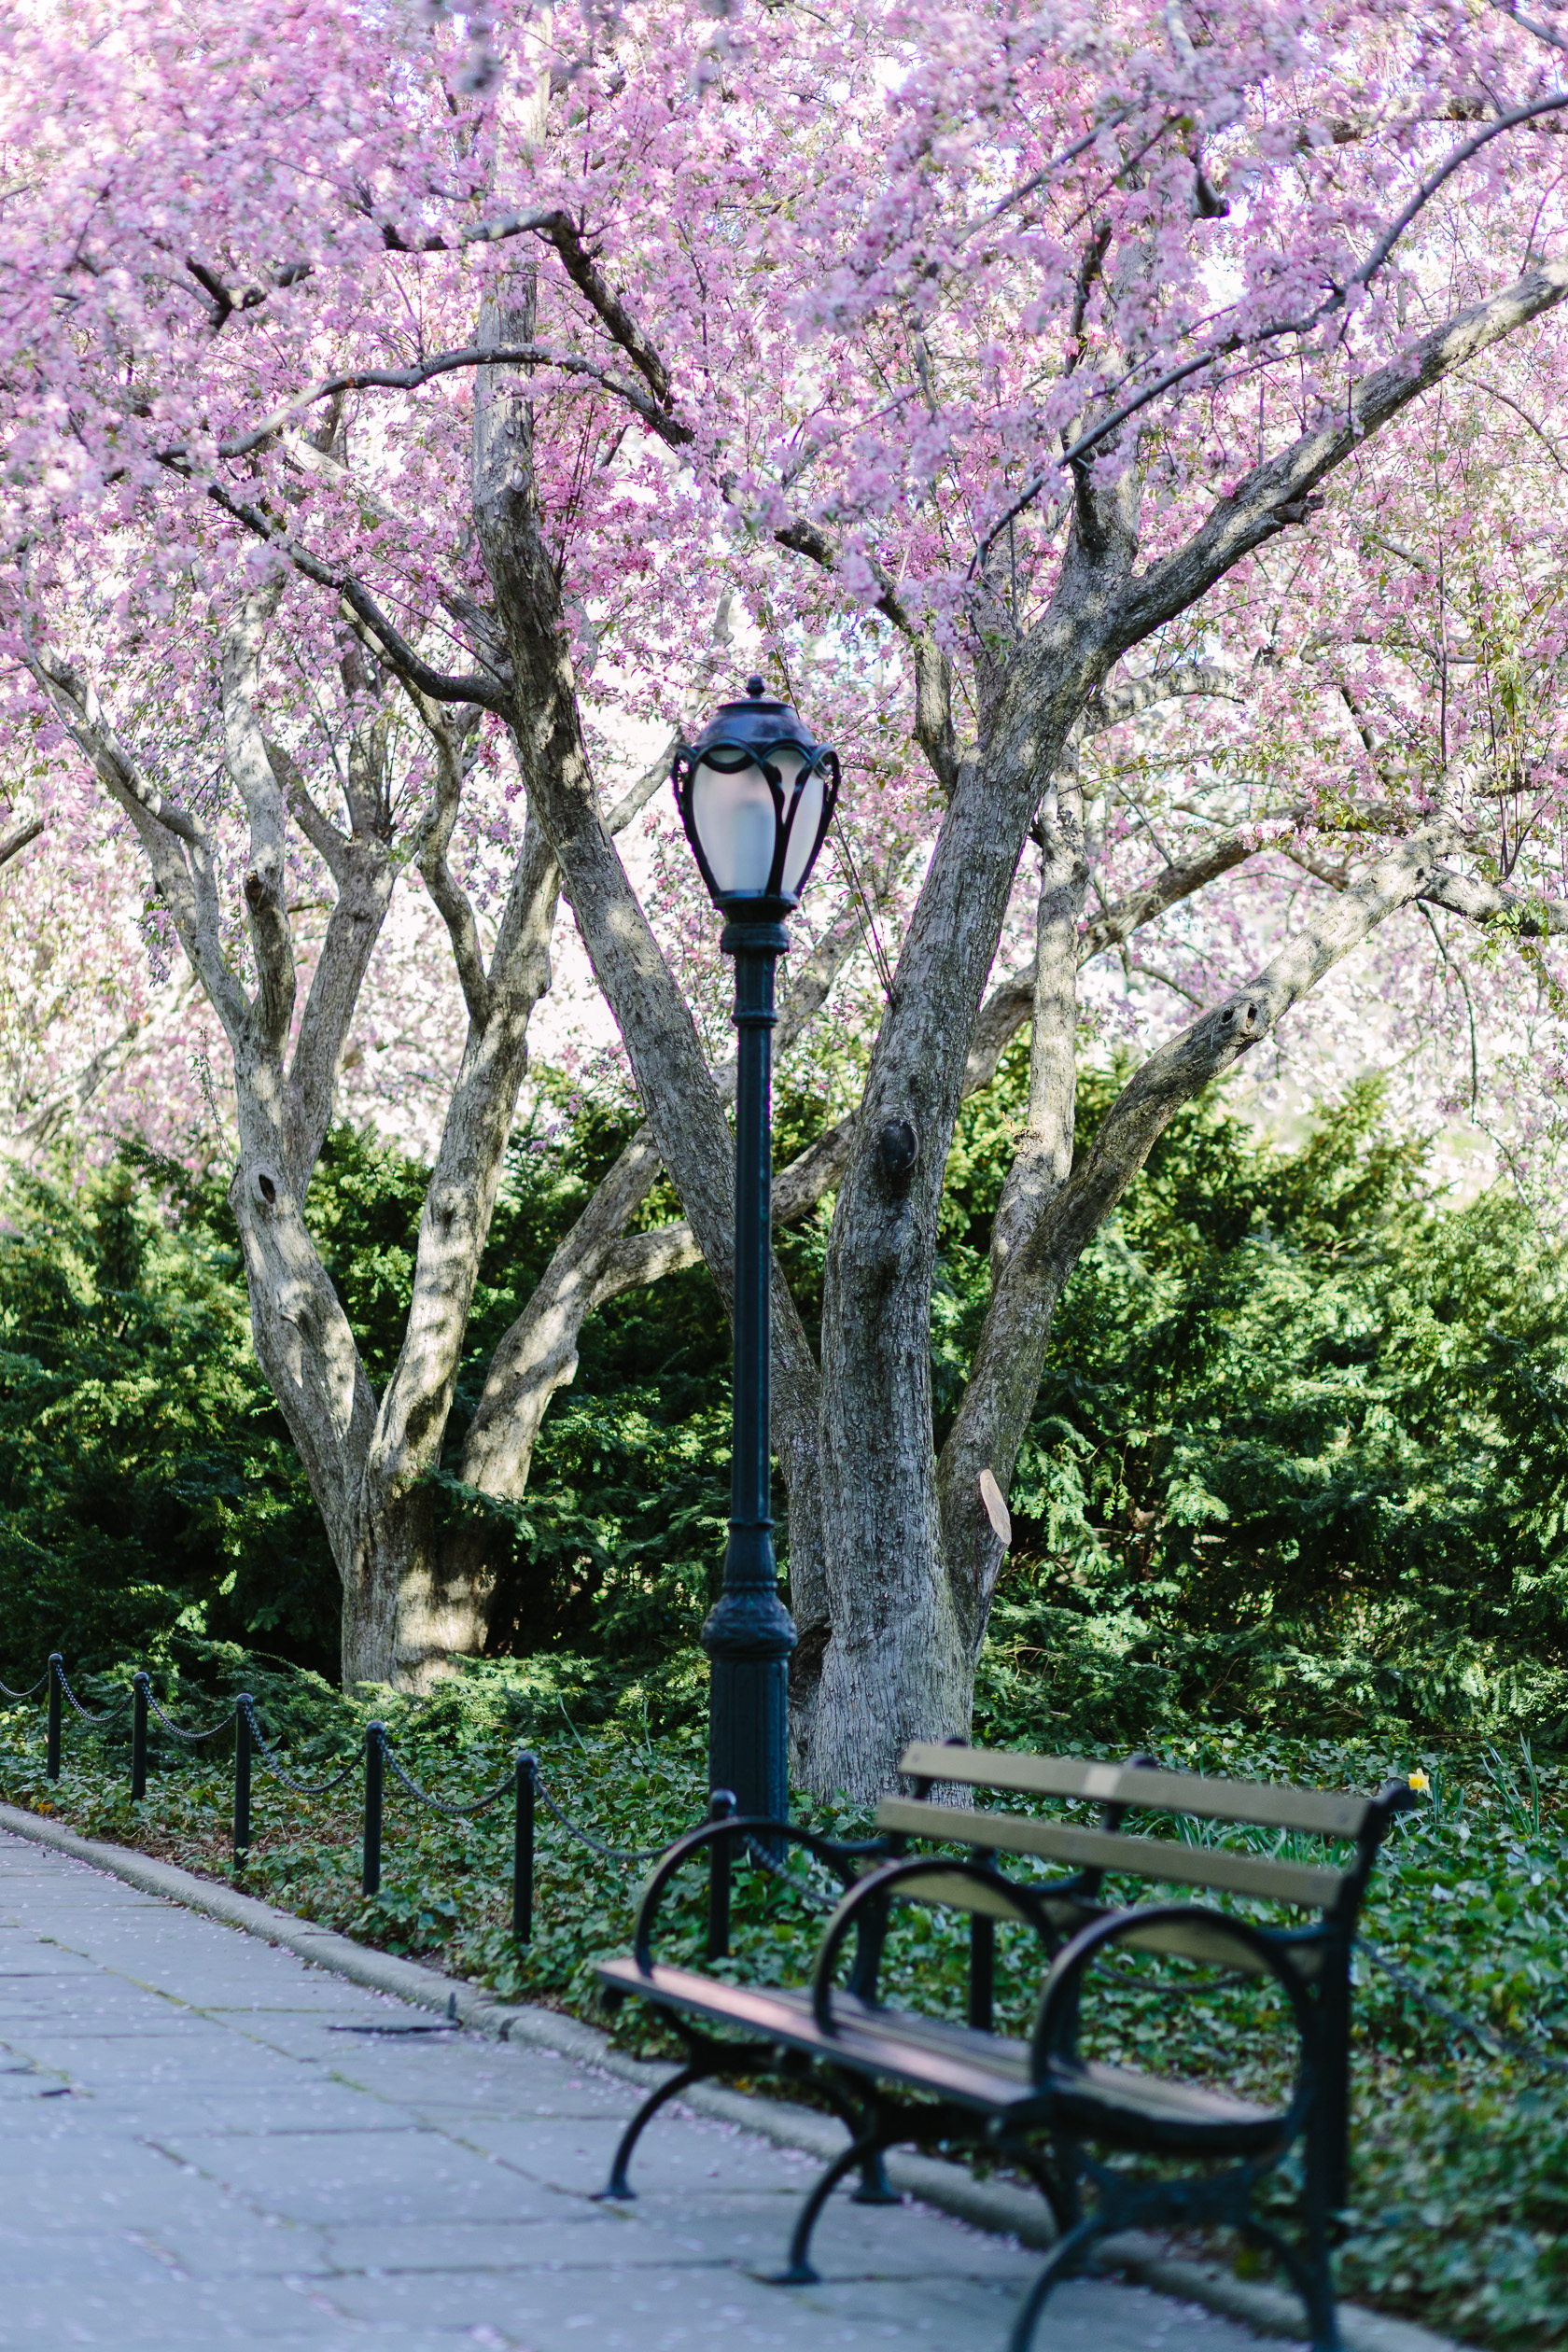 5 Reasons To Visit The Central Park Conservatory Garden In